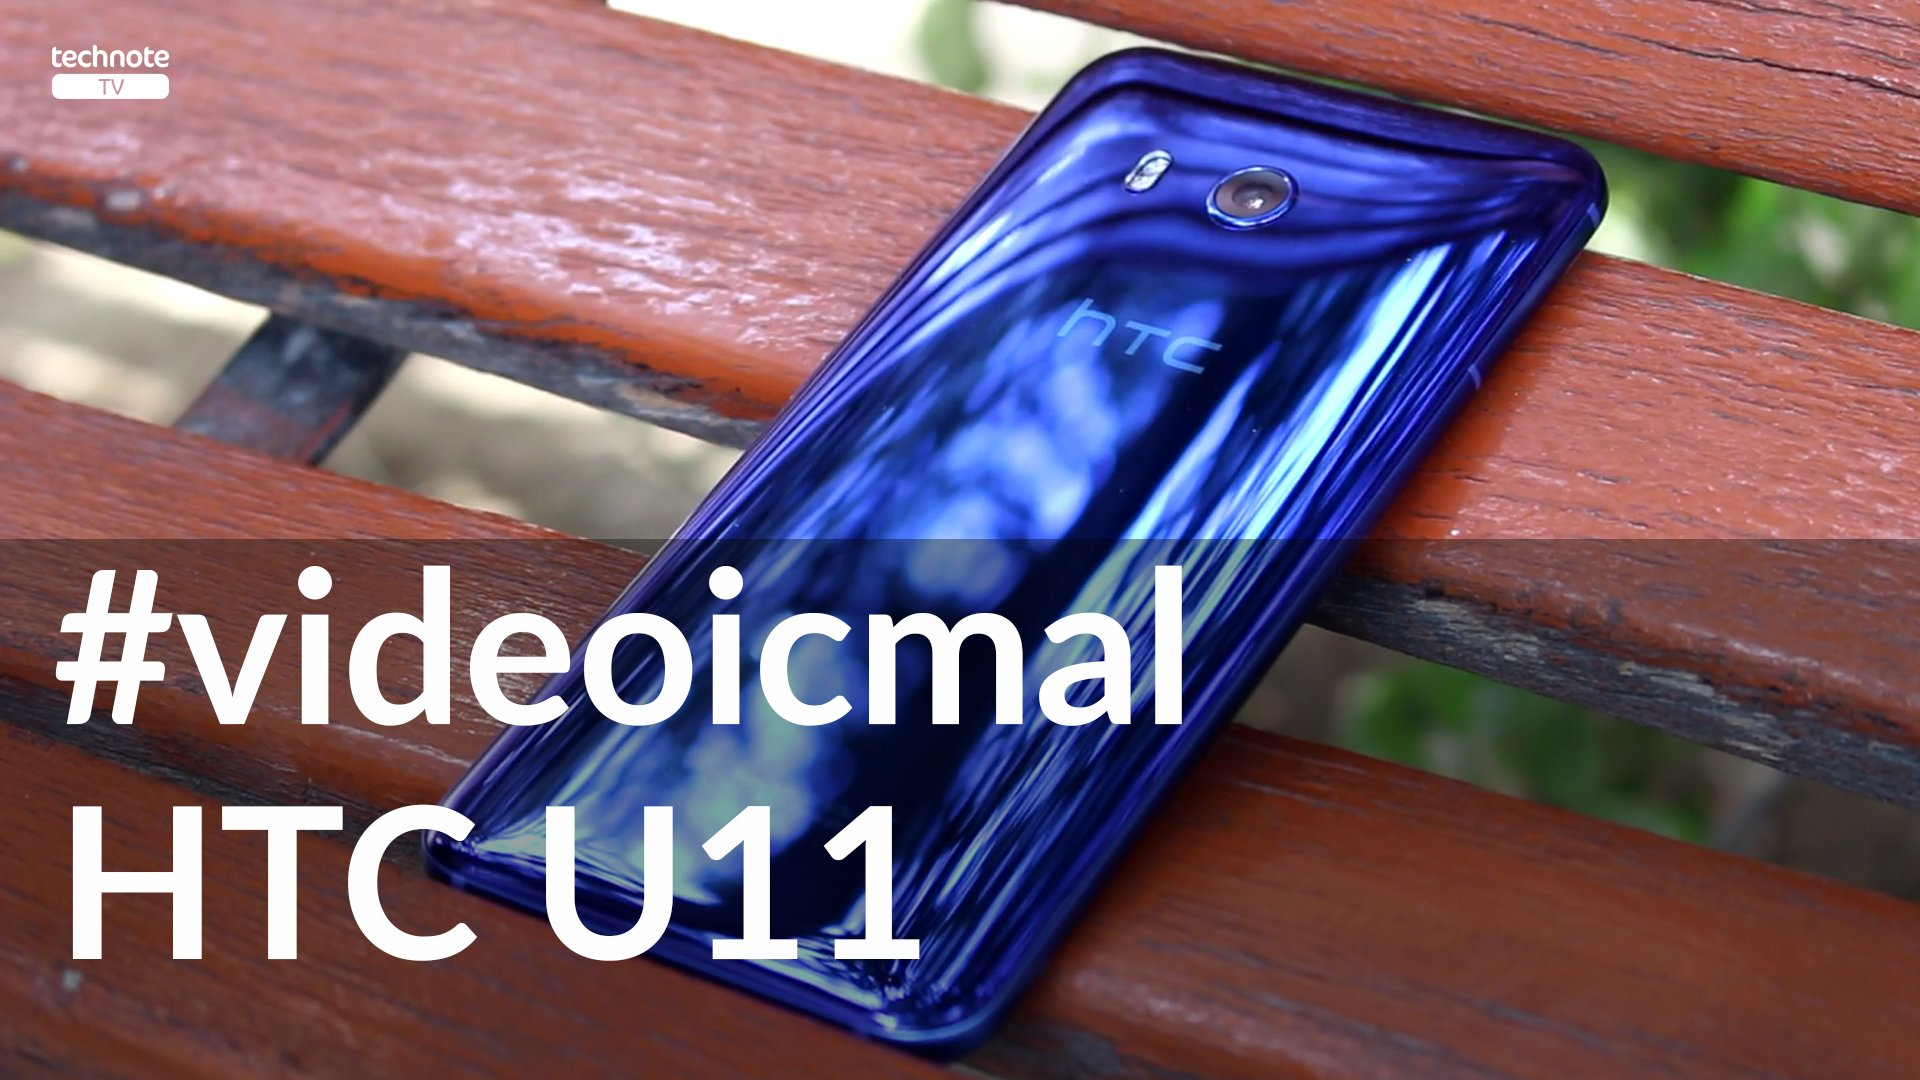 HTC U11 - Video İcmal